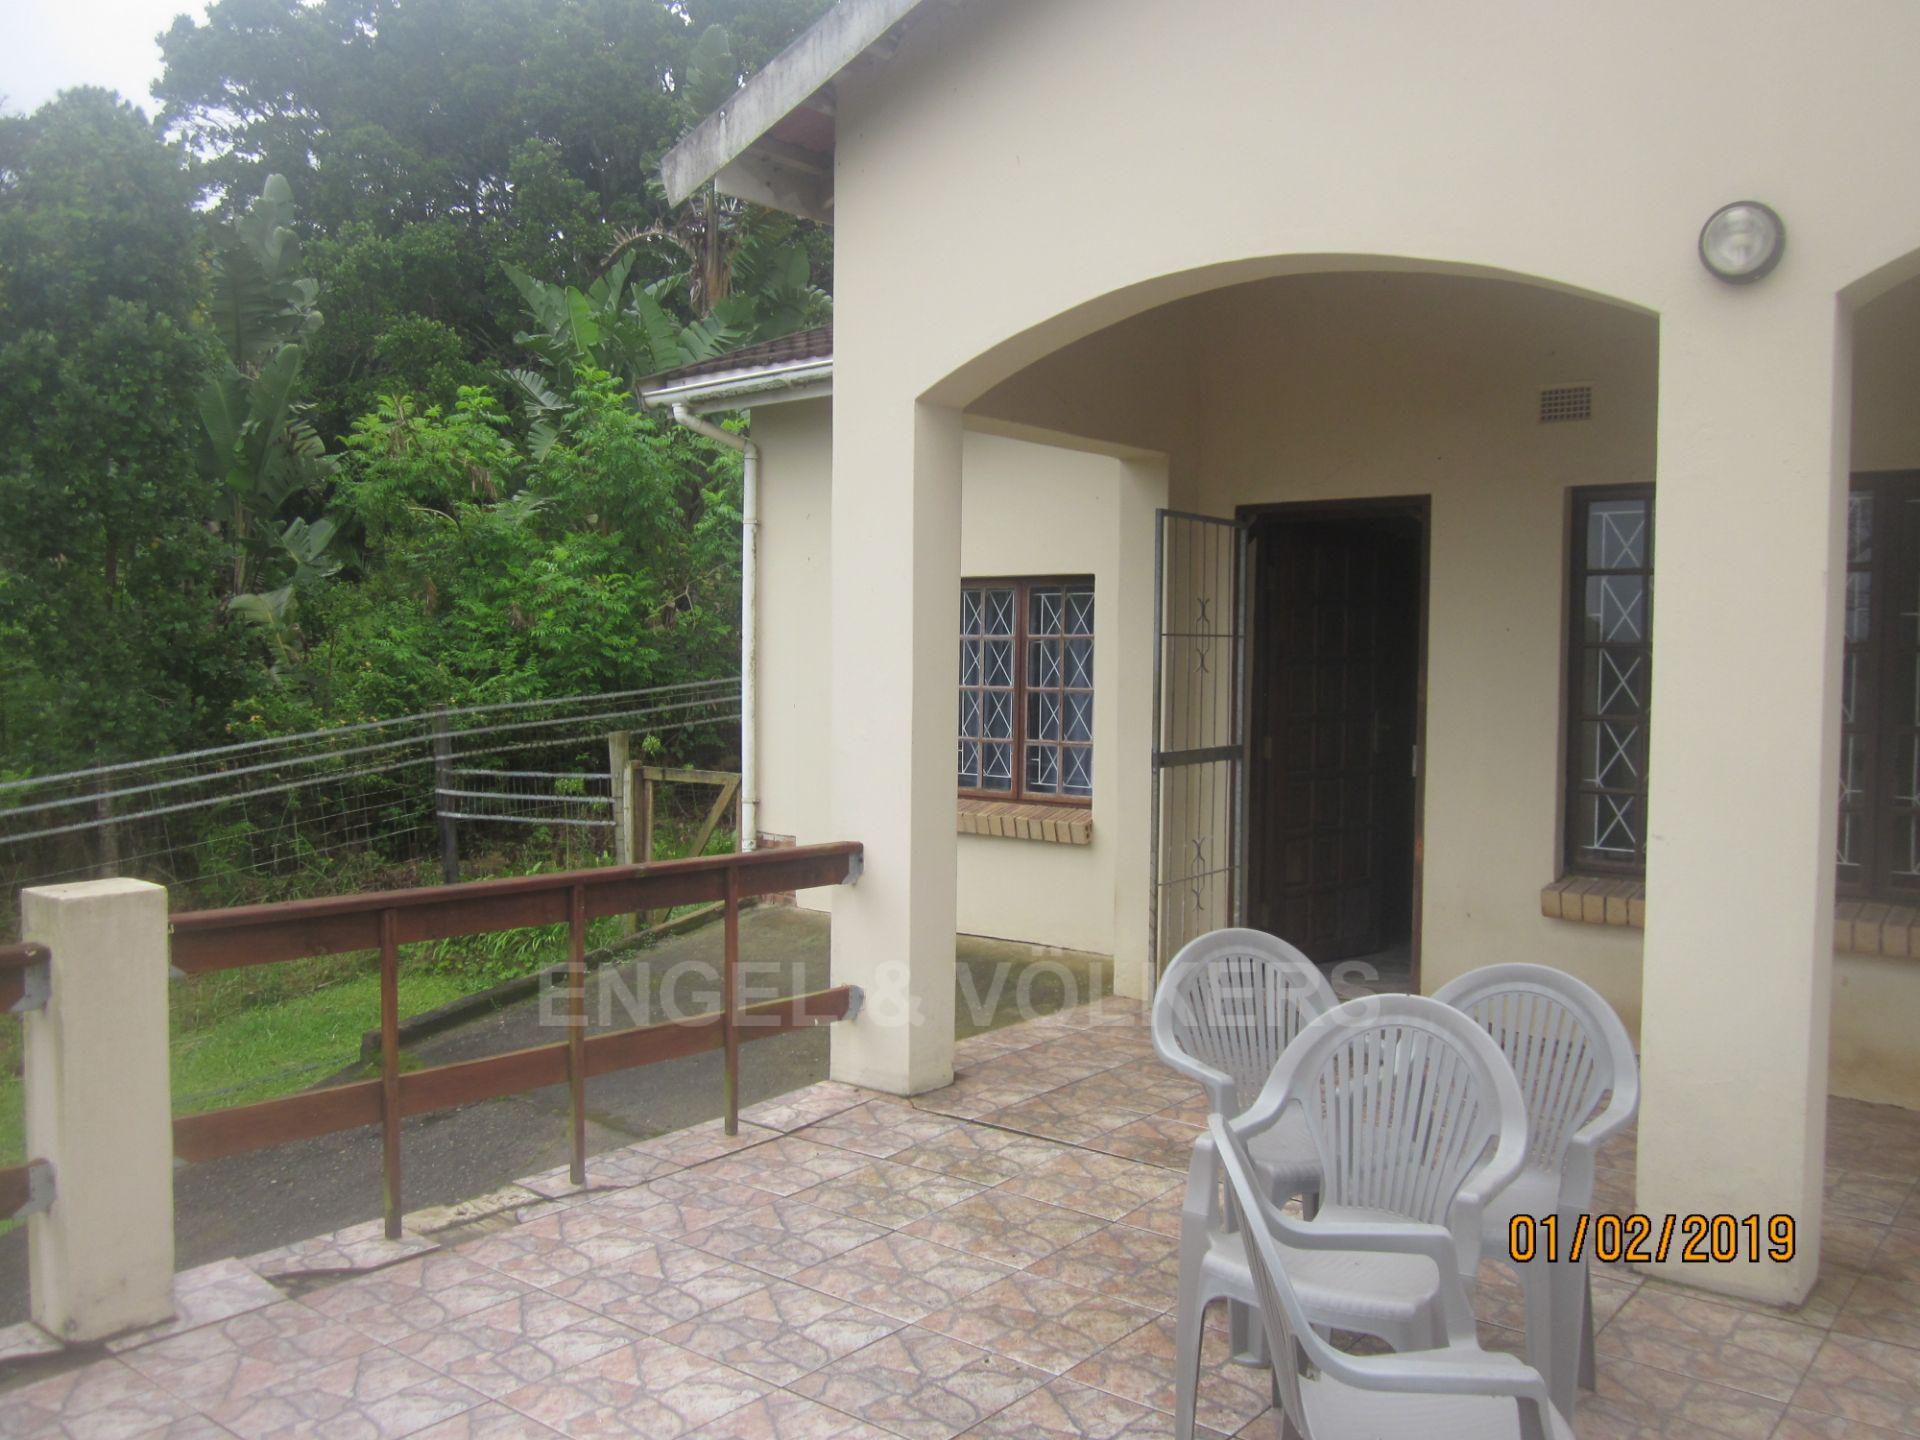 House in Palm Beach - 002 Patio and front door.JPG